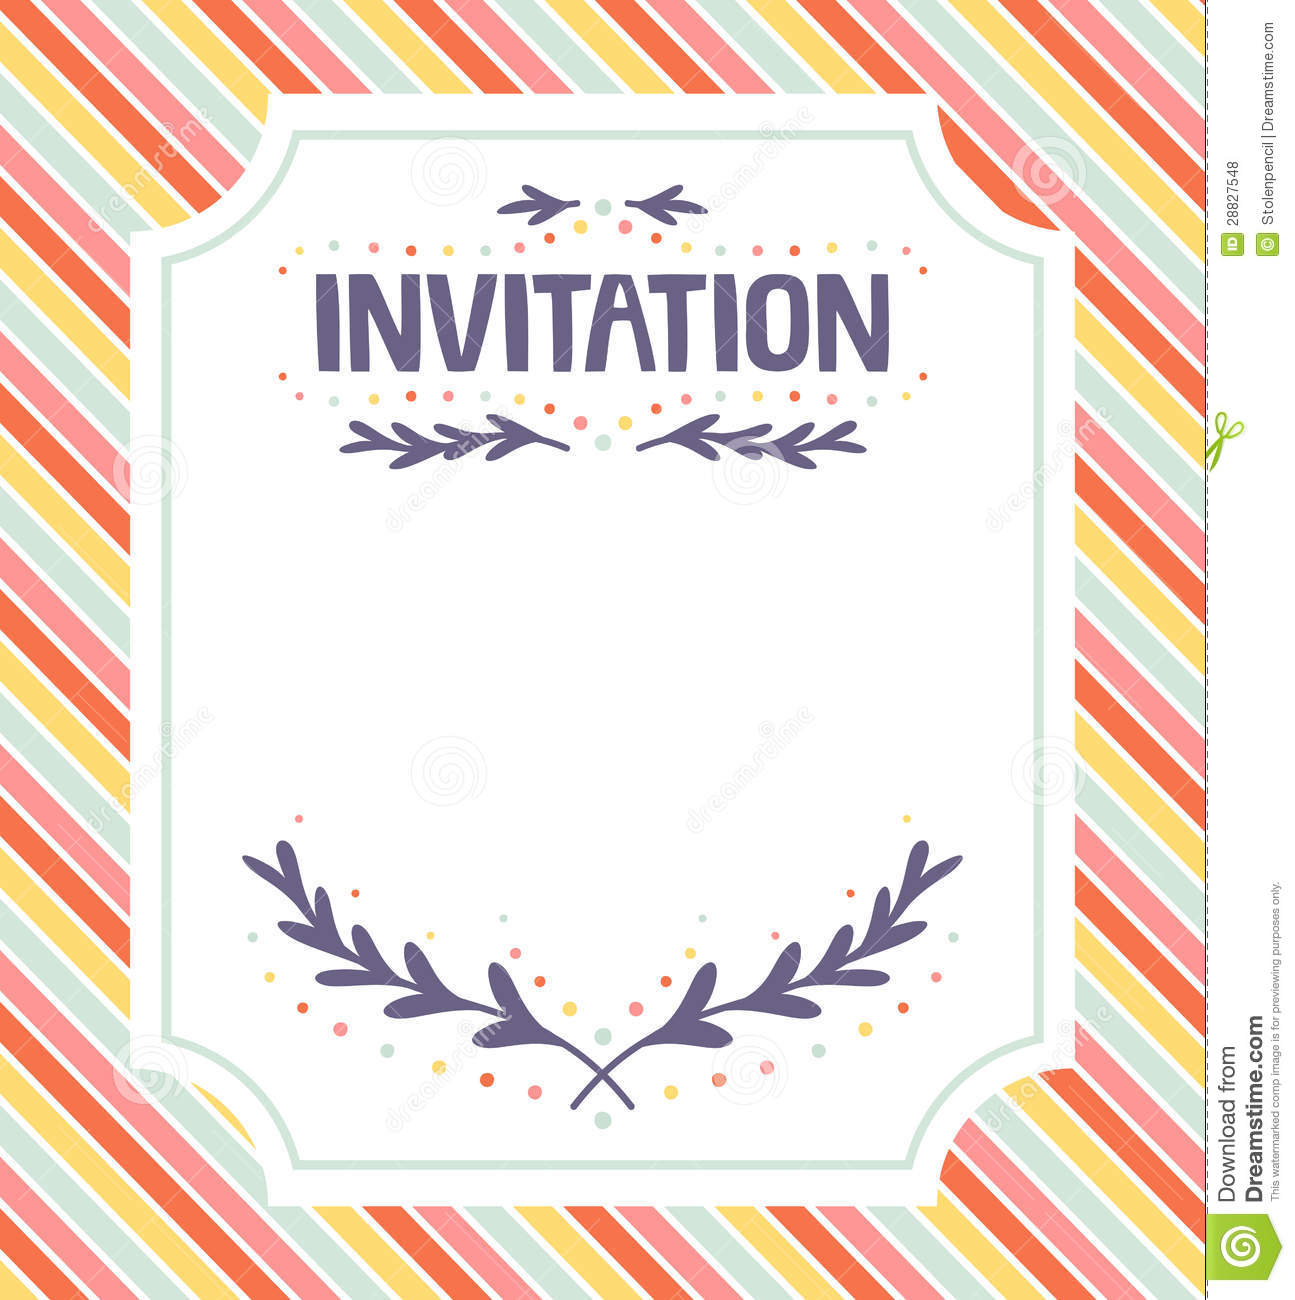 Invitation Template Royalty Free Stock Photos - Image: 28827548